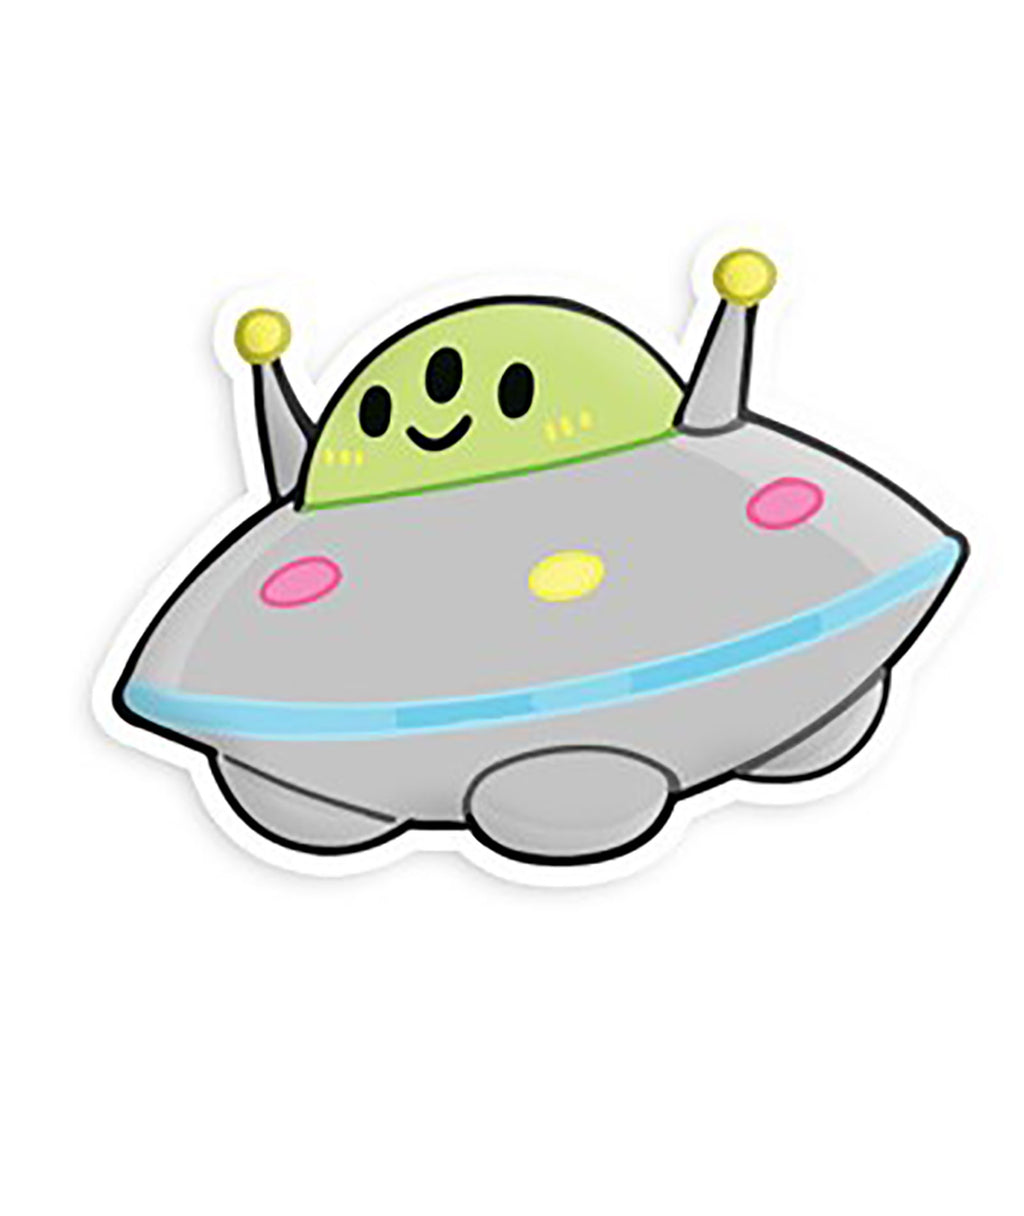 Squishable Vinyl Sticker Flying Saucer